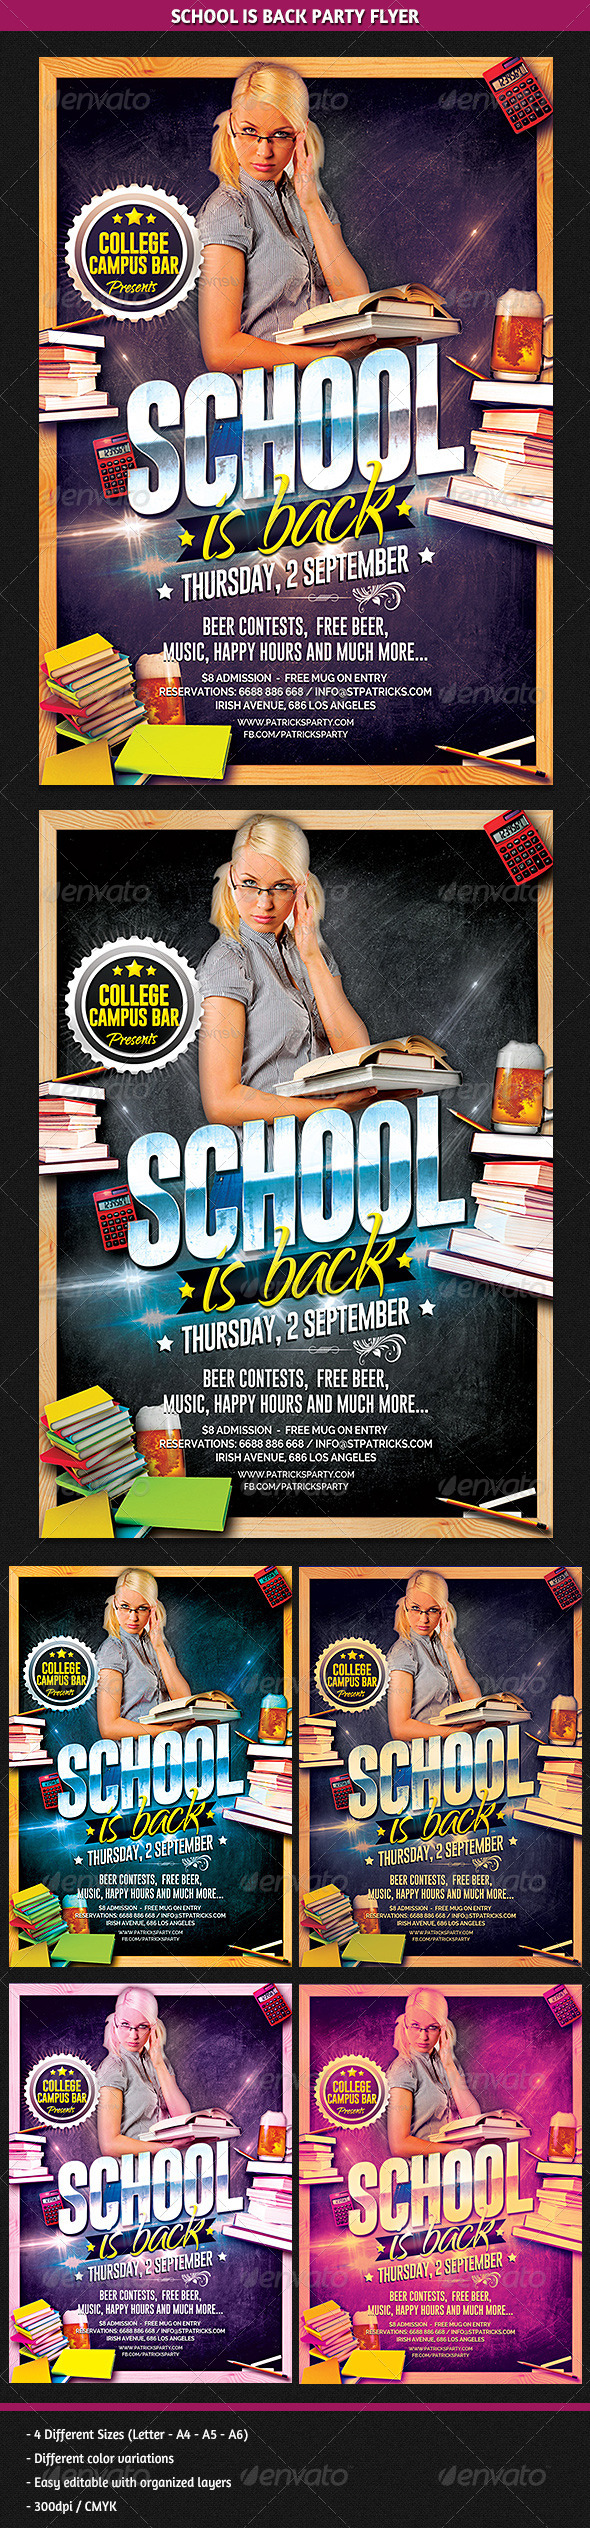 GraphicRiver School is Back Party Flyer 8514151